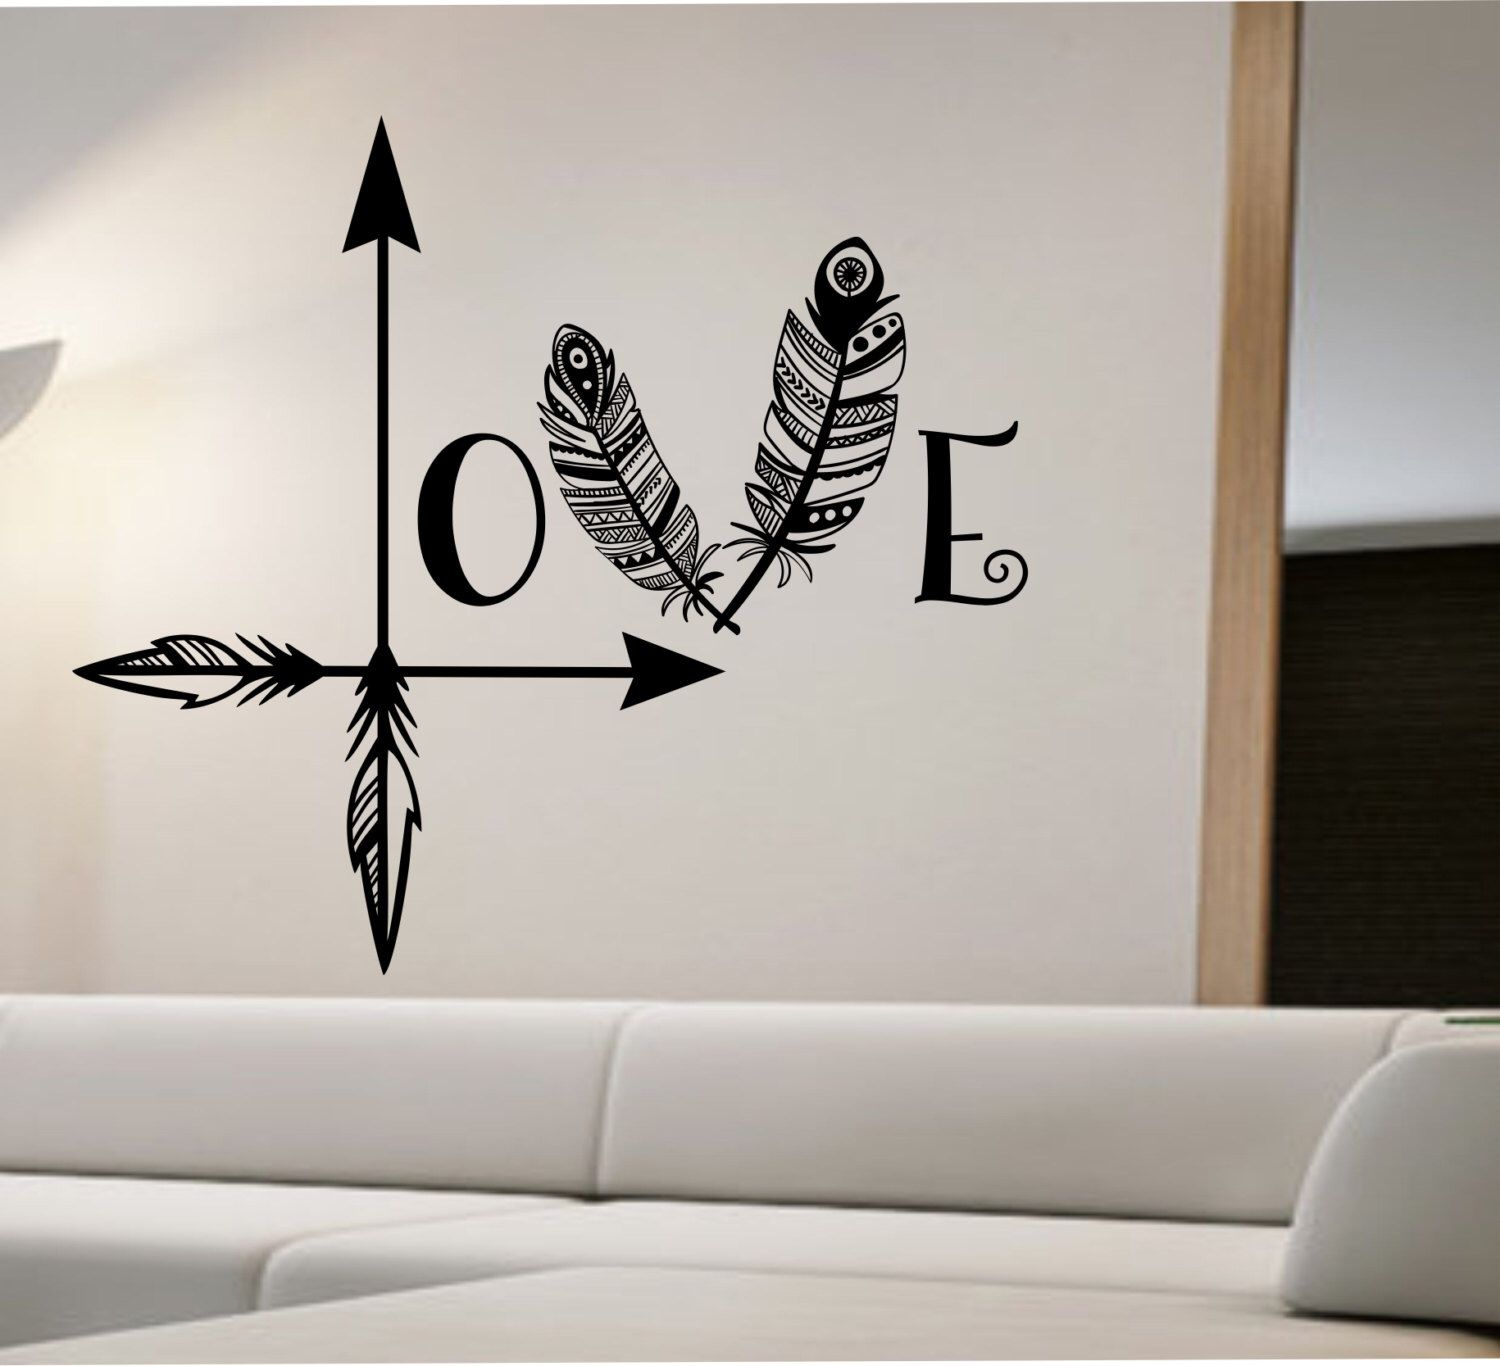 Wall Hanging Craft Design : Arrow feather love wall decal namaste vinyl sticker art